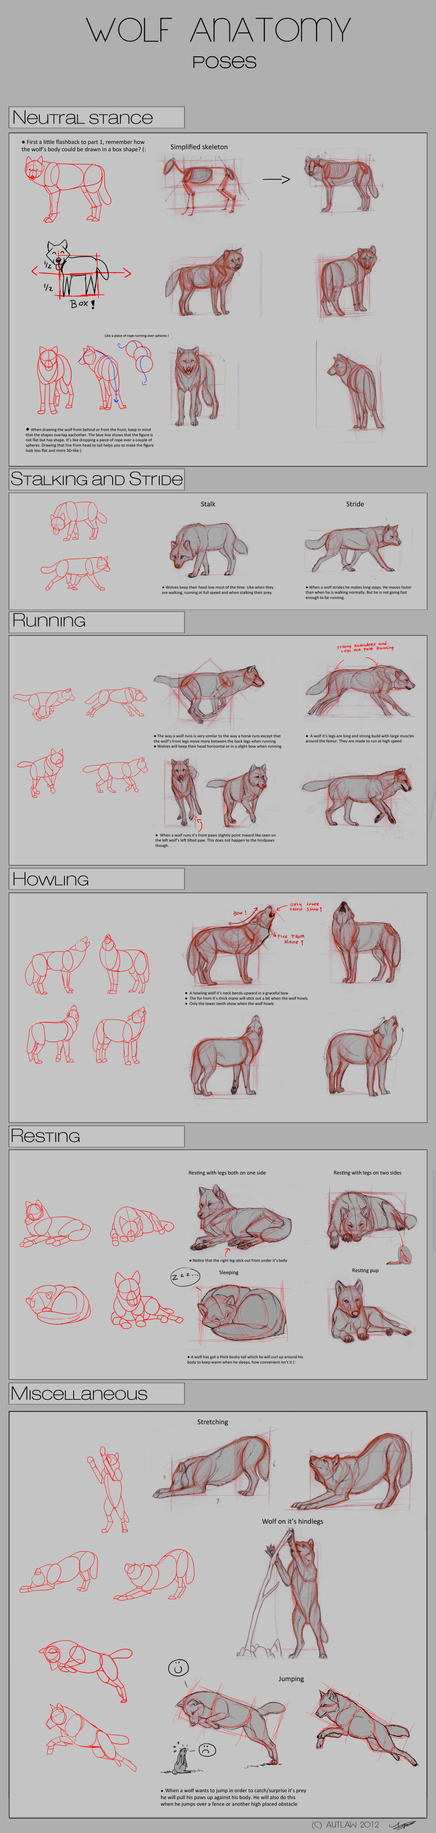 Wolf Anatomy - Part 2 by Autlaw